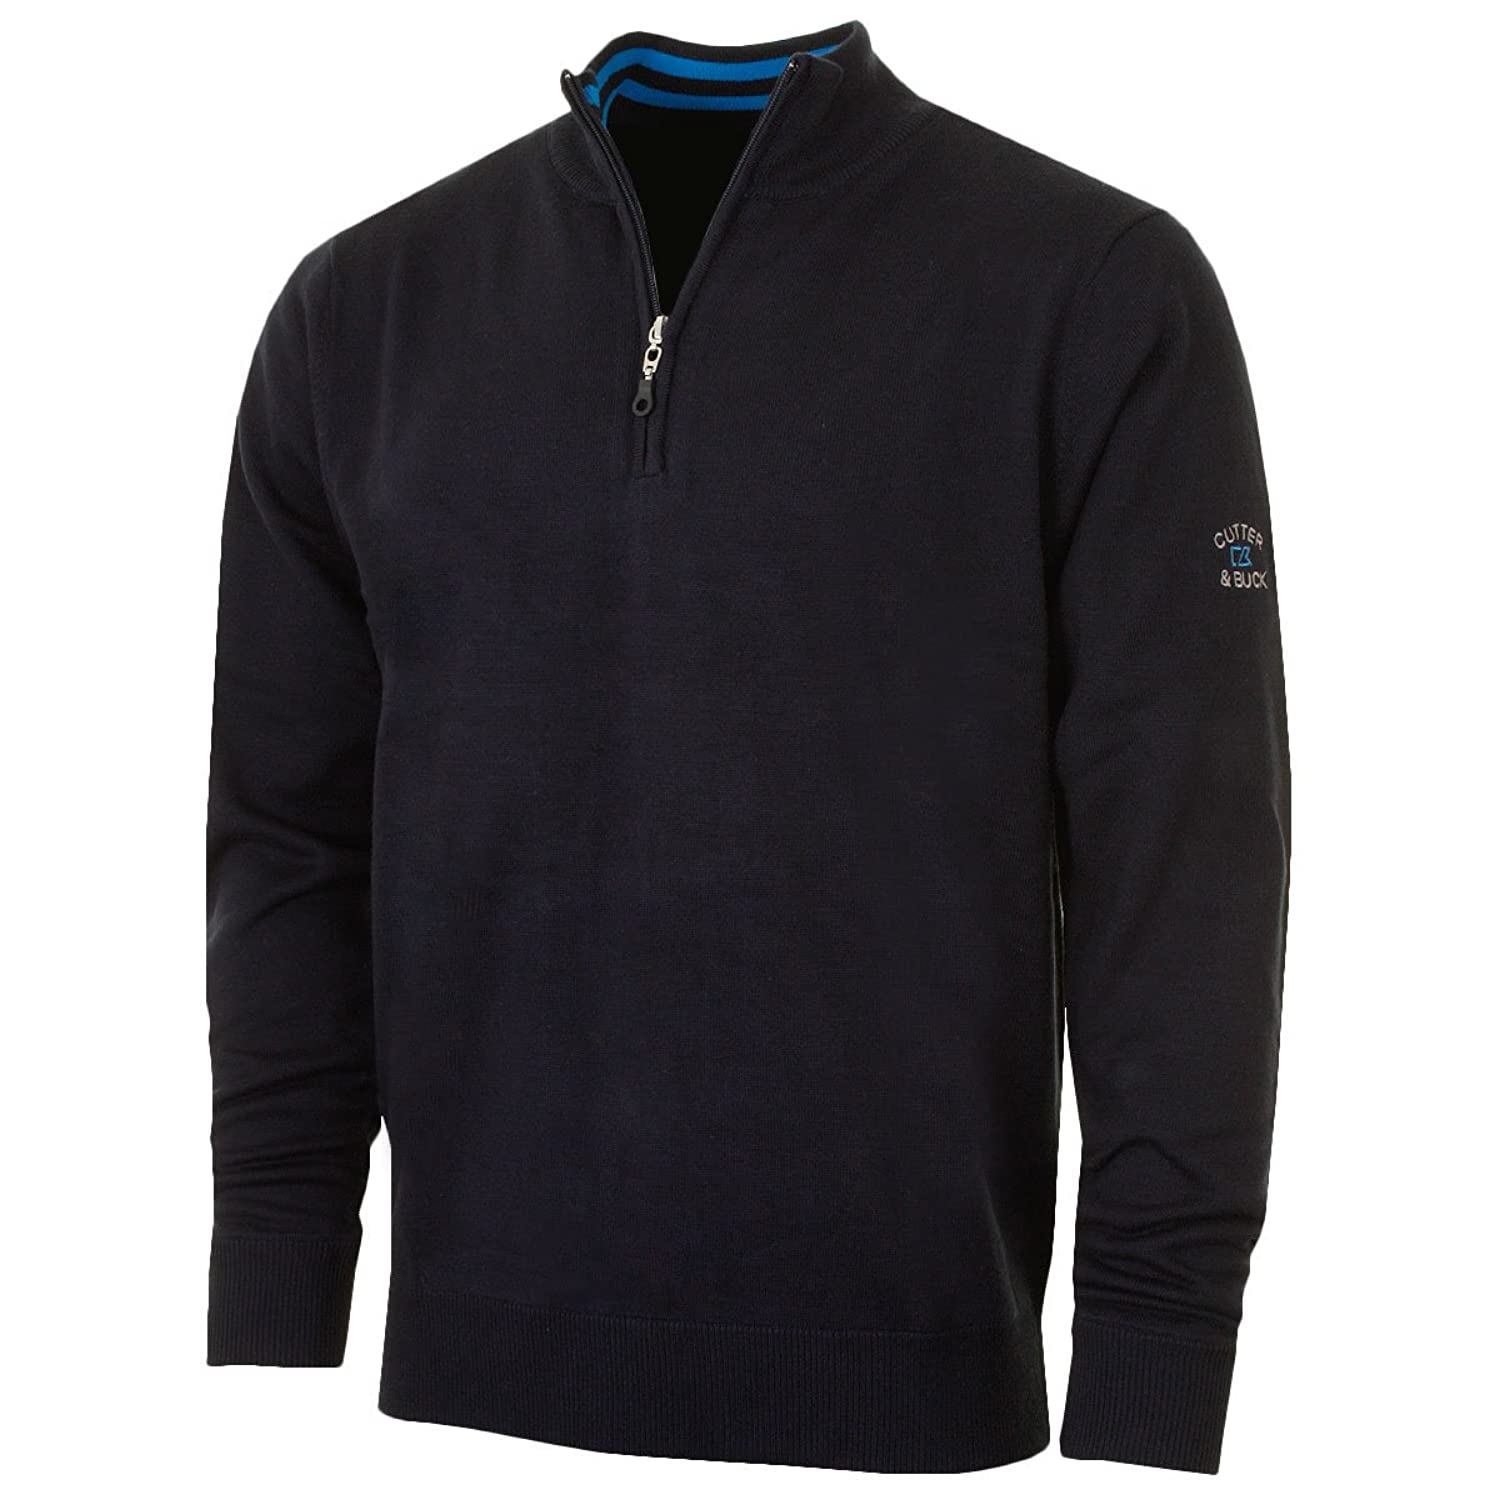 Cutter & Buck 2016 Mens Lined Vancouver WindBlock Sweater - Navy - S